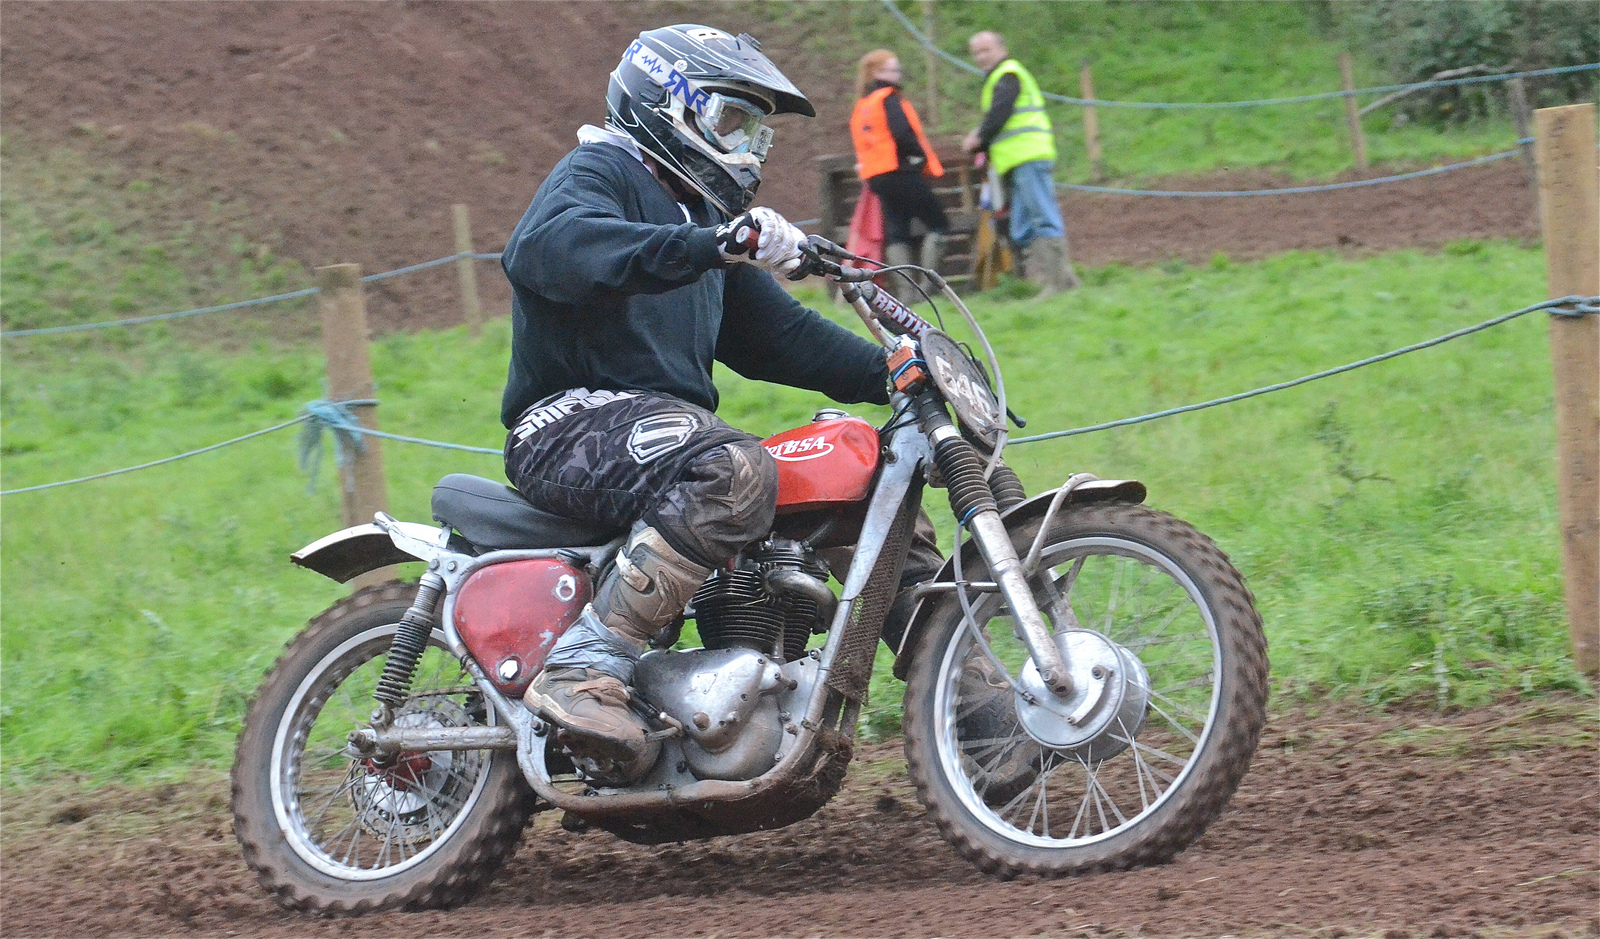 Llanthony Classic Scramble Photos September 2015 classicdirtbikerider.com..57